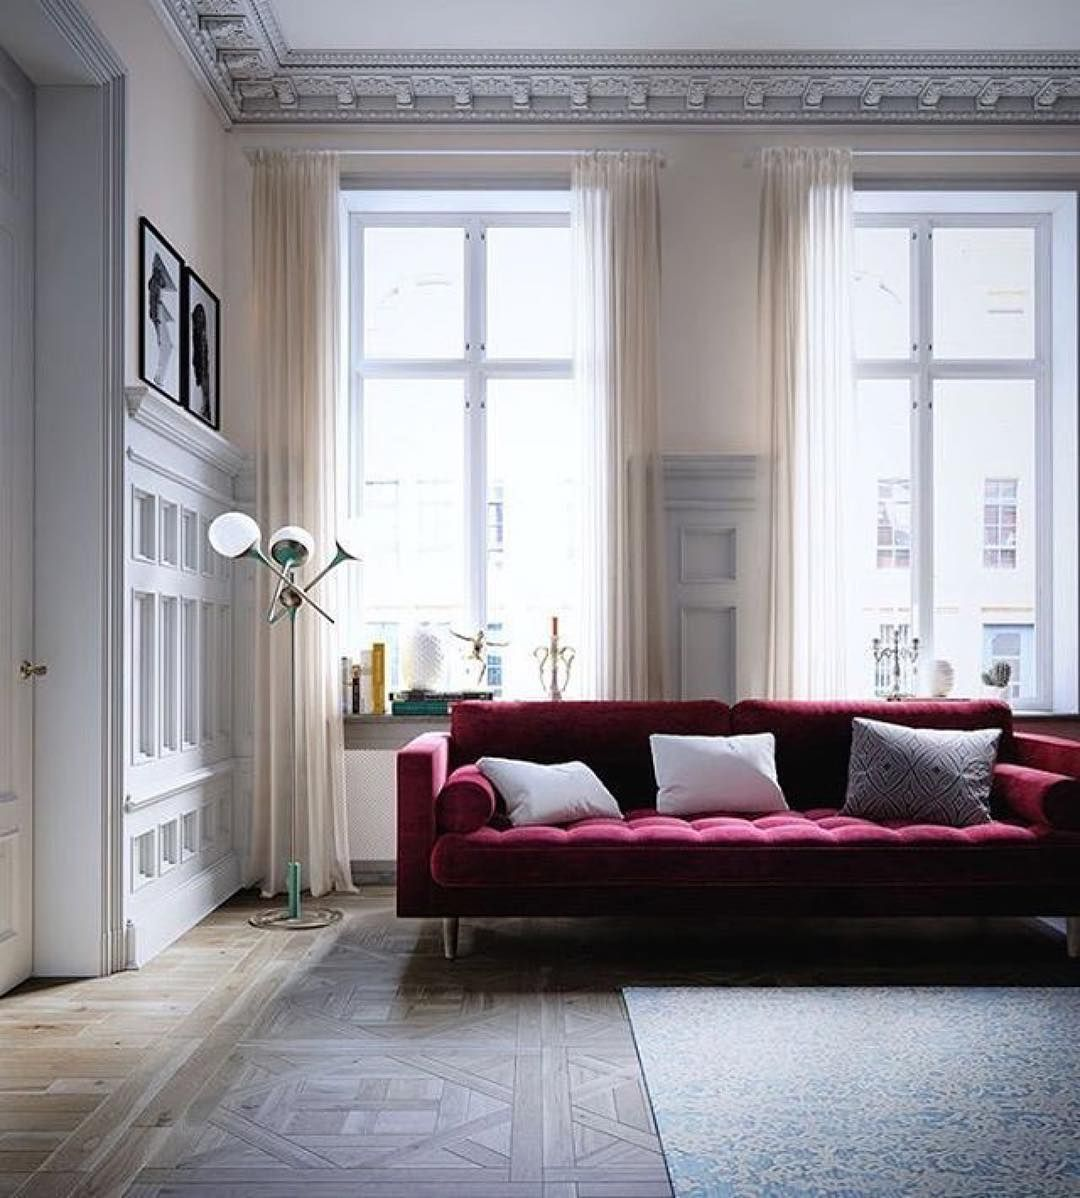 for living interior amazing furniture design red room ideas elegant modern velvet with sofa couch chesterfield